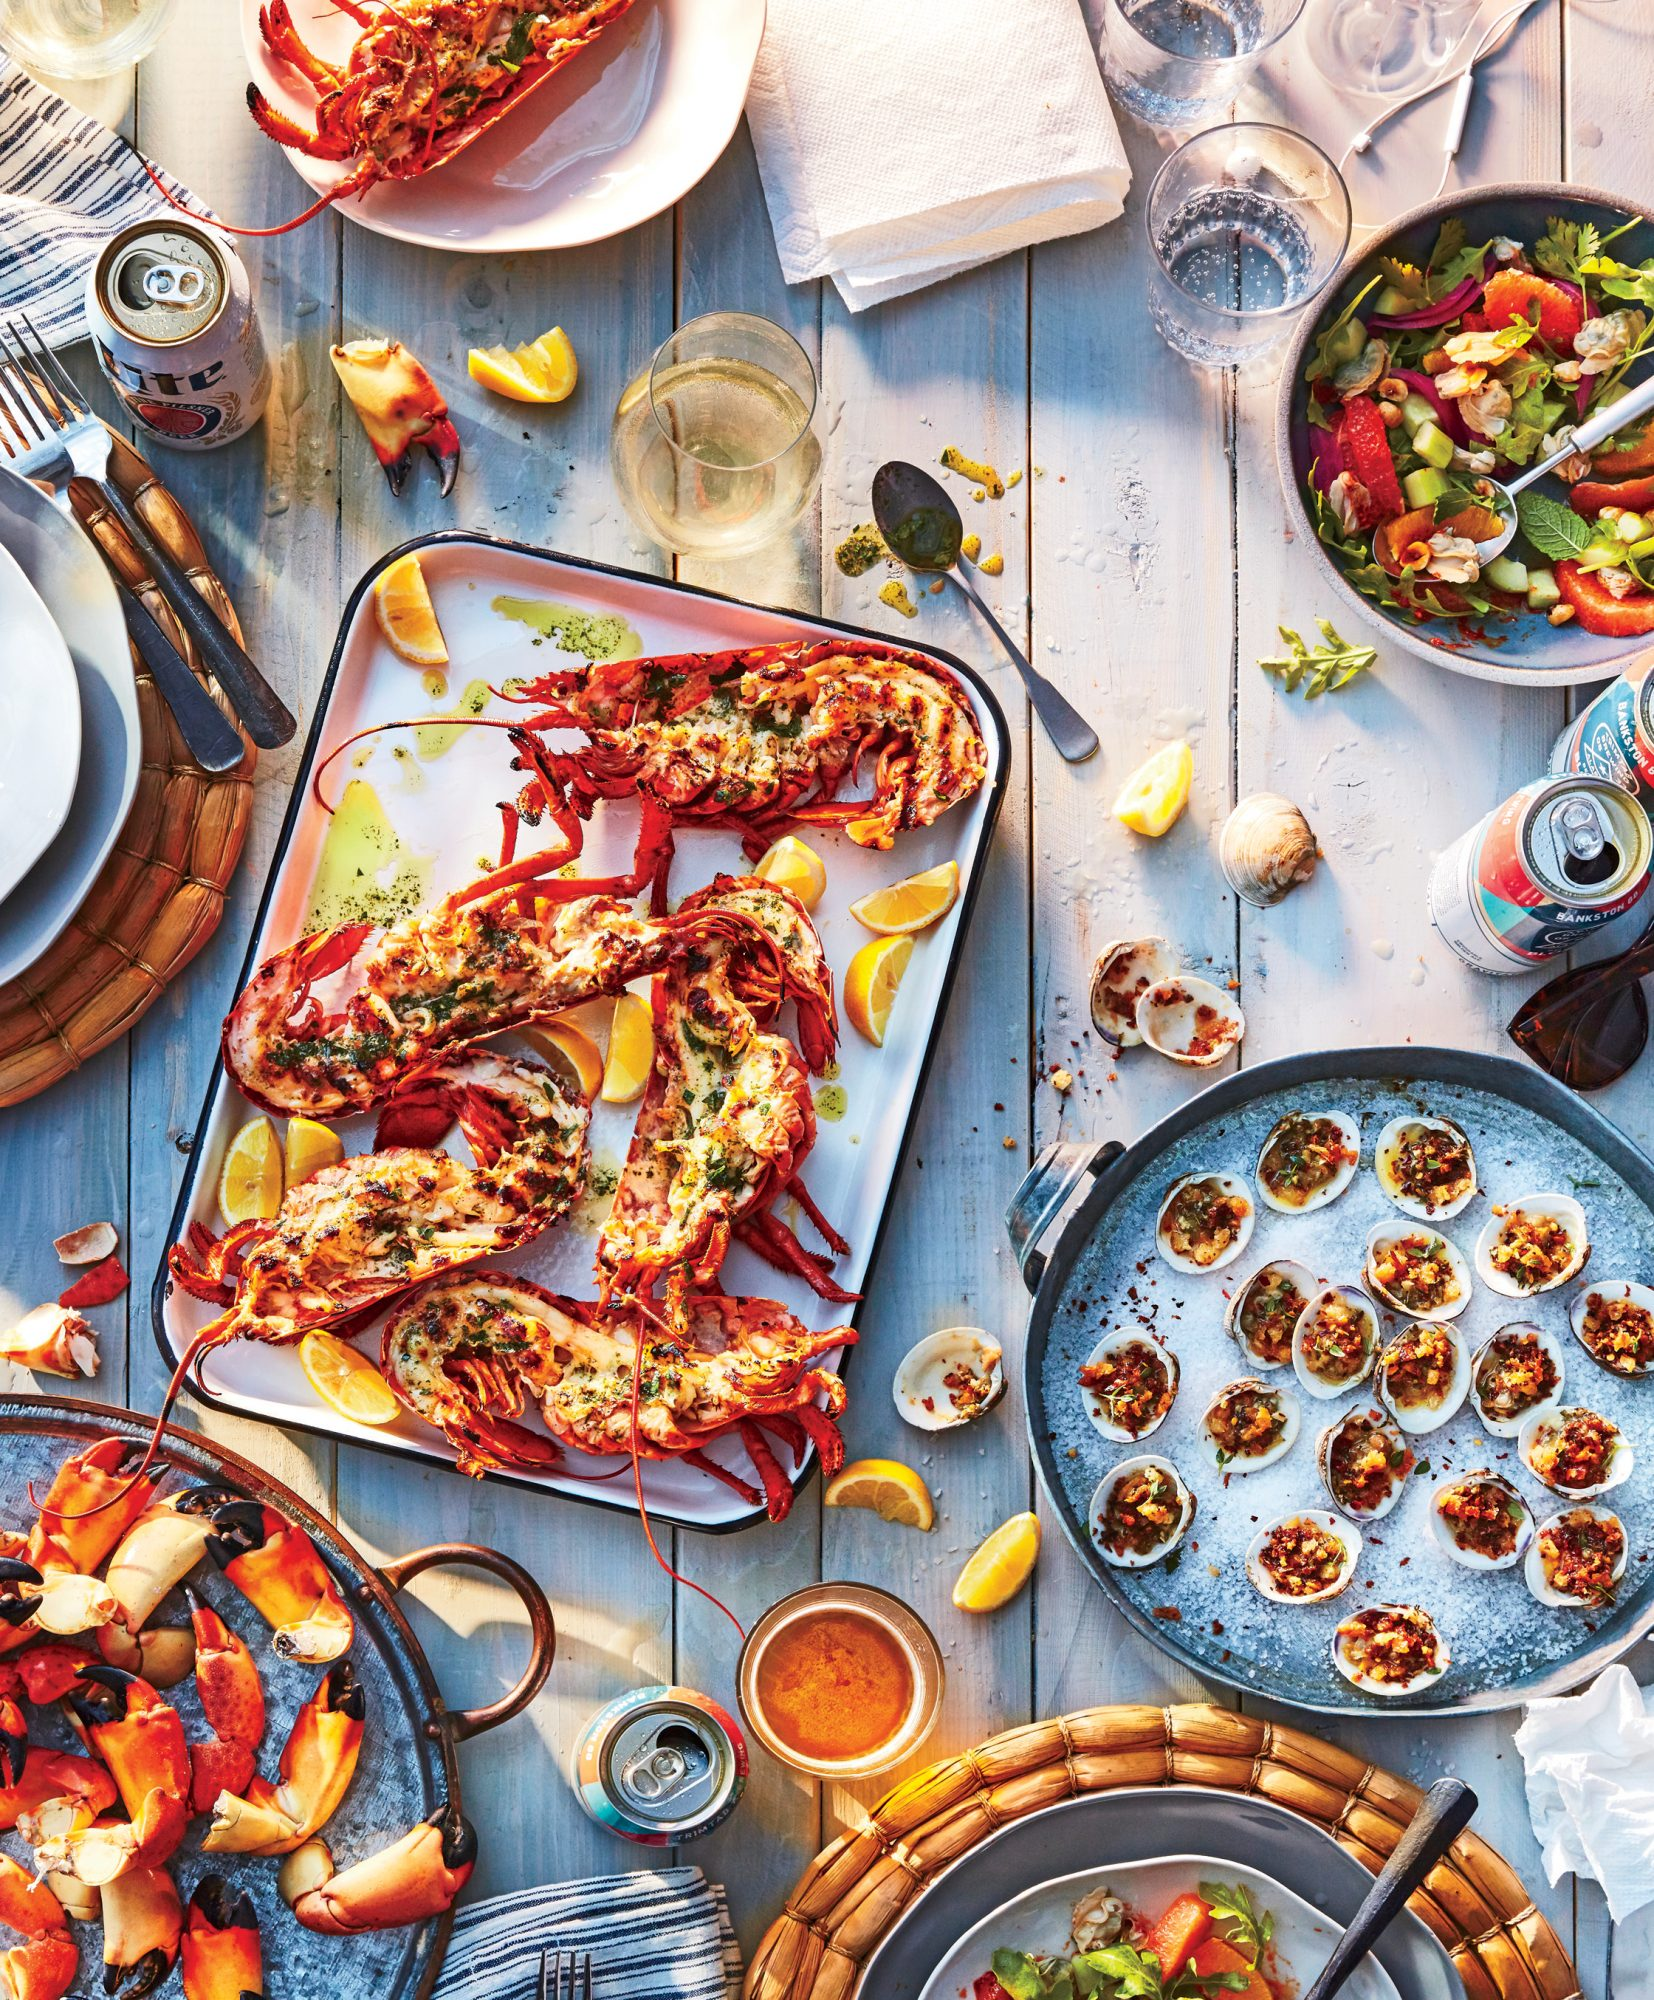 Grilled Spiny Lobsters with Herbed Oil